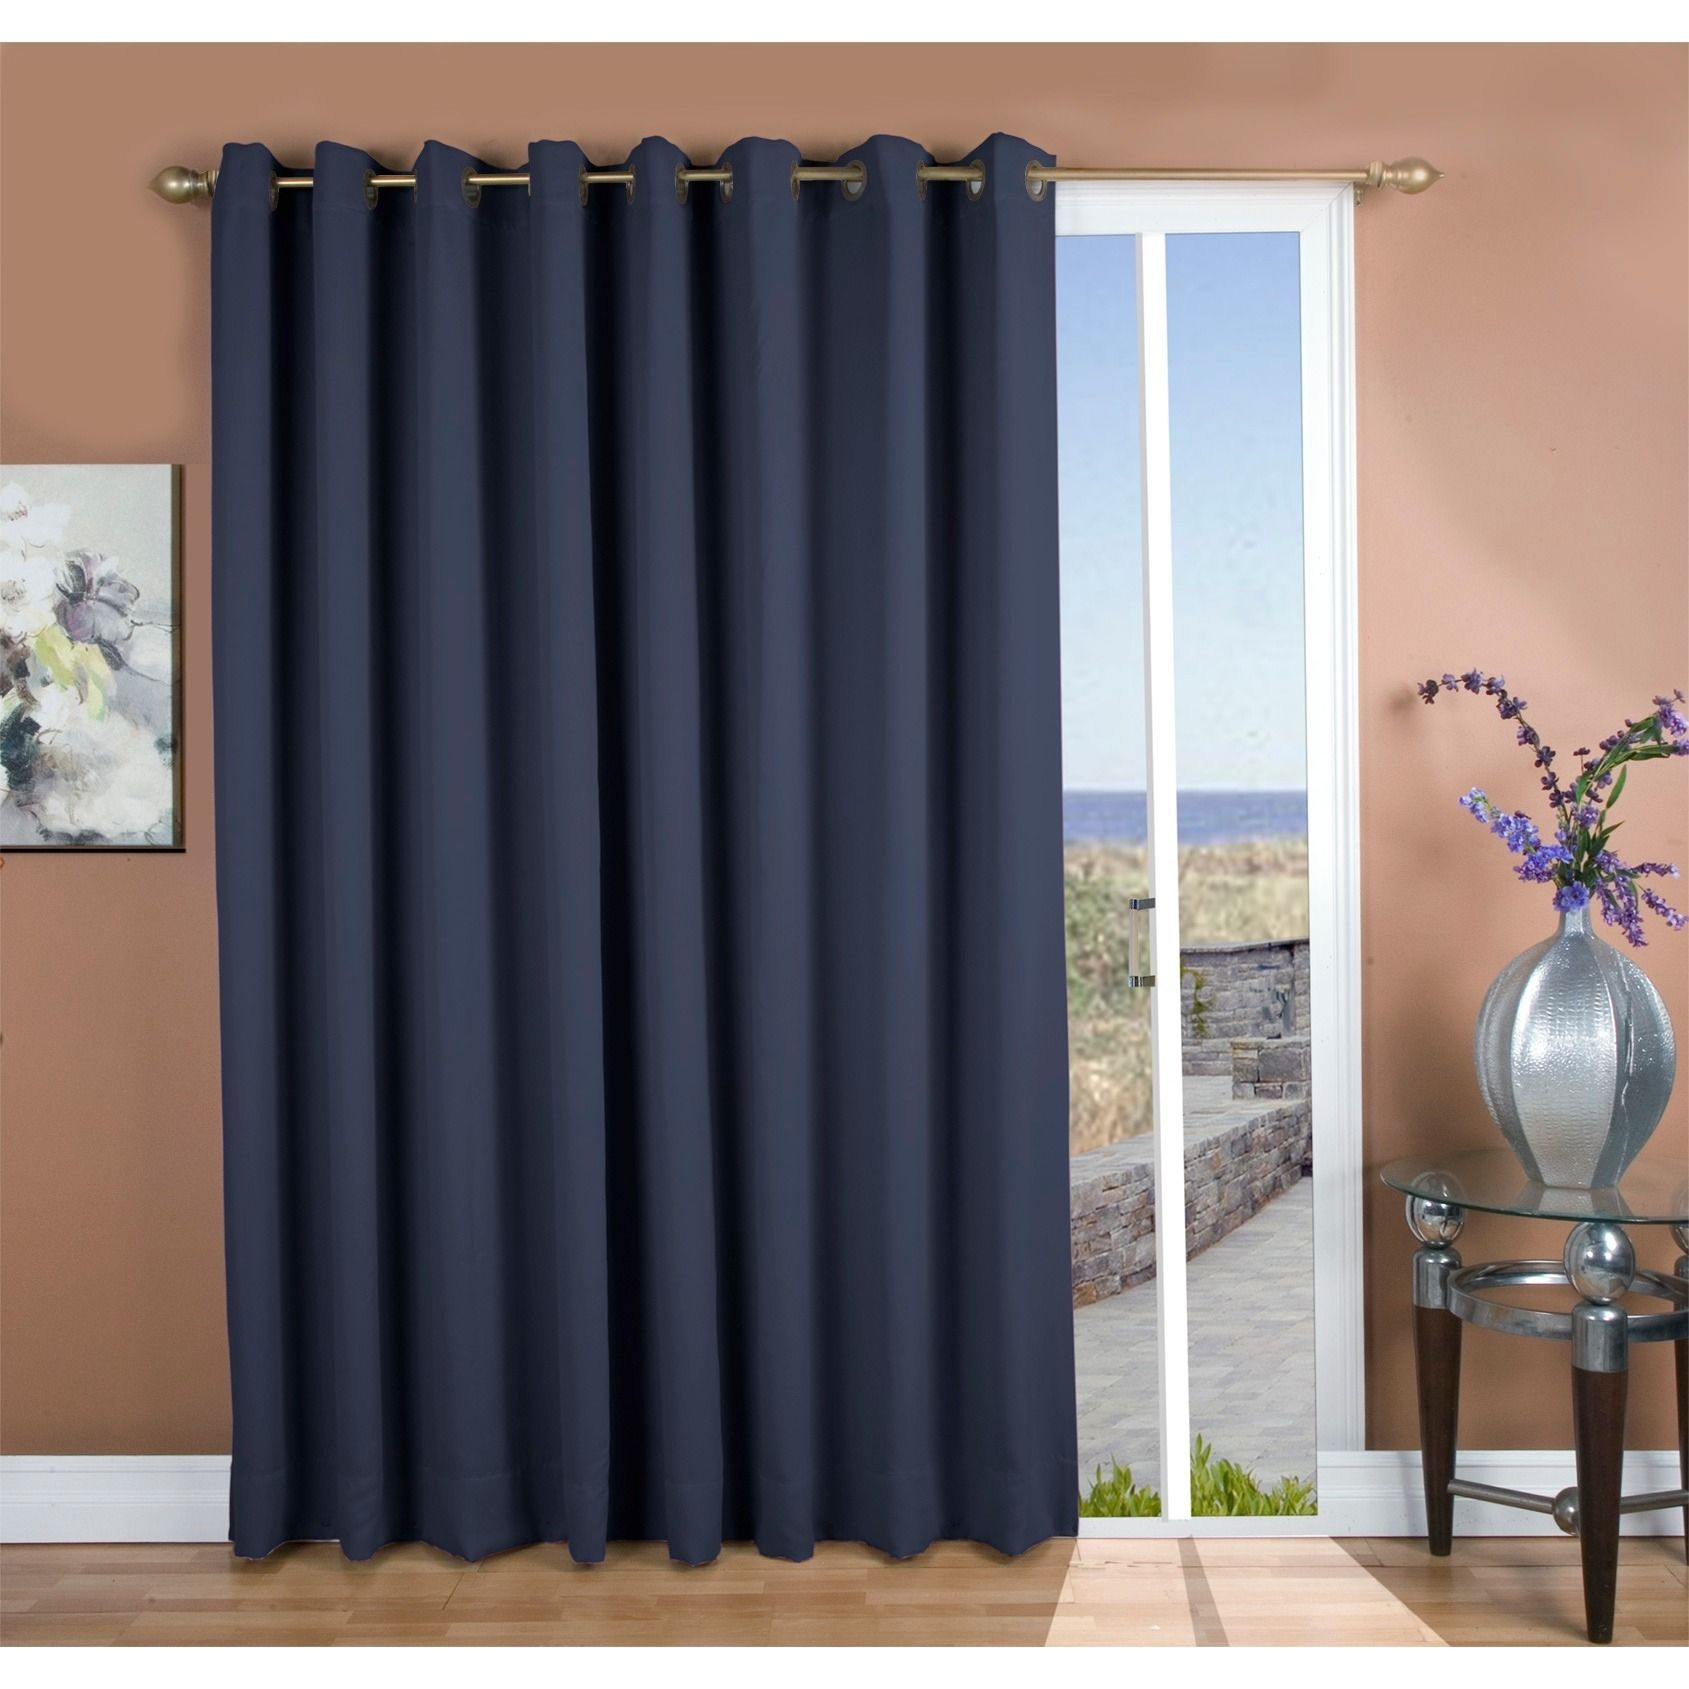 Fine Ricardo Ultimate Blackout Grommet Top Patio Curtain Panel Home Interior And Landscaping Oversignezvosmurscom